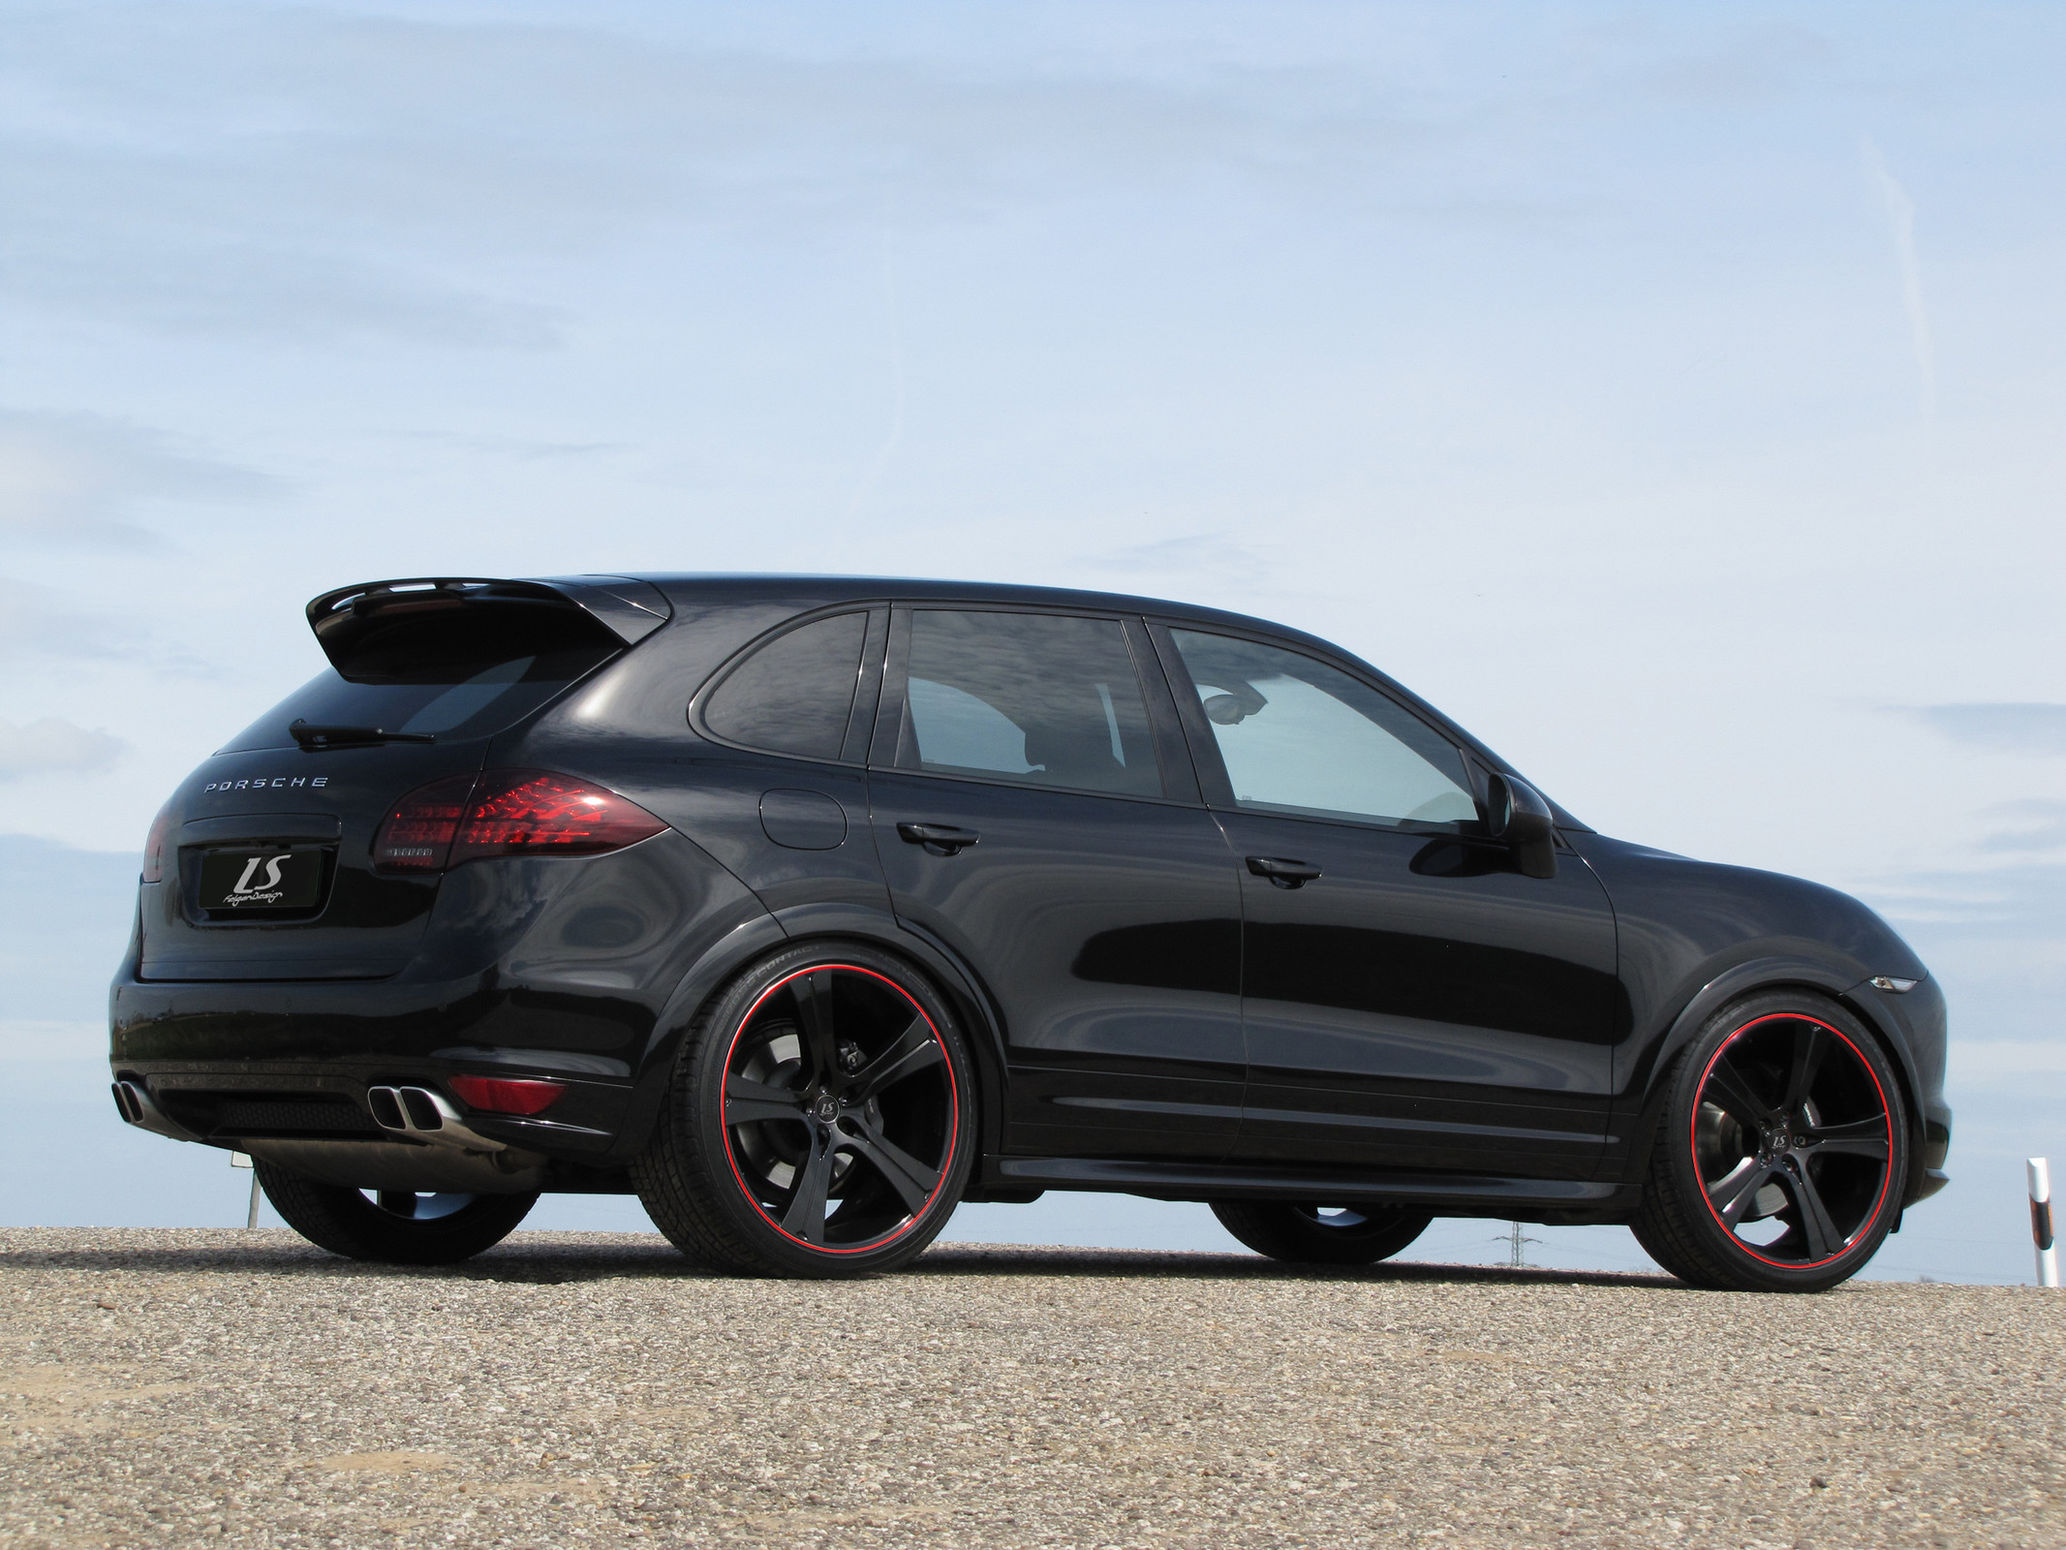 news alufelgen porsche cayenne s 9pa mit 23zoll felgen. Black Bedroom Furniture Sets. Home Design Ideas